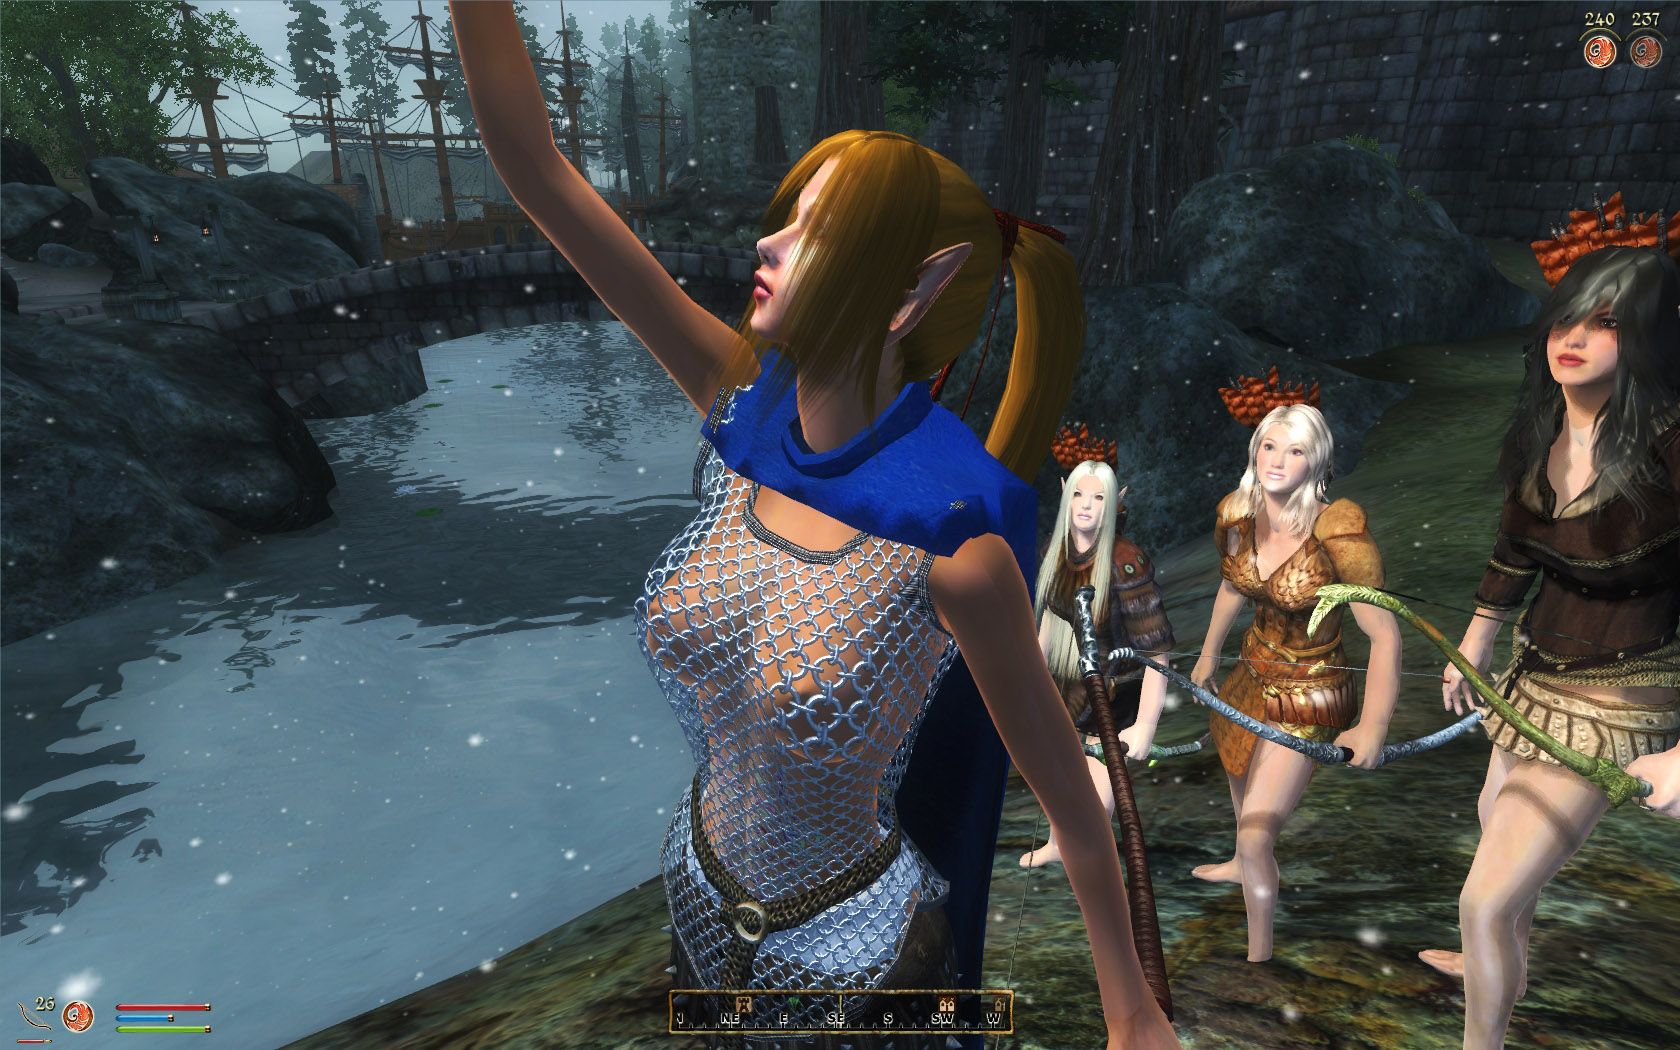 Neverwinter nights 2 sex mod